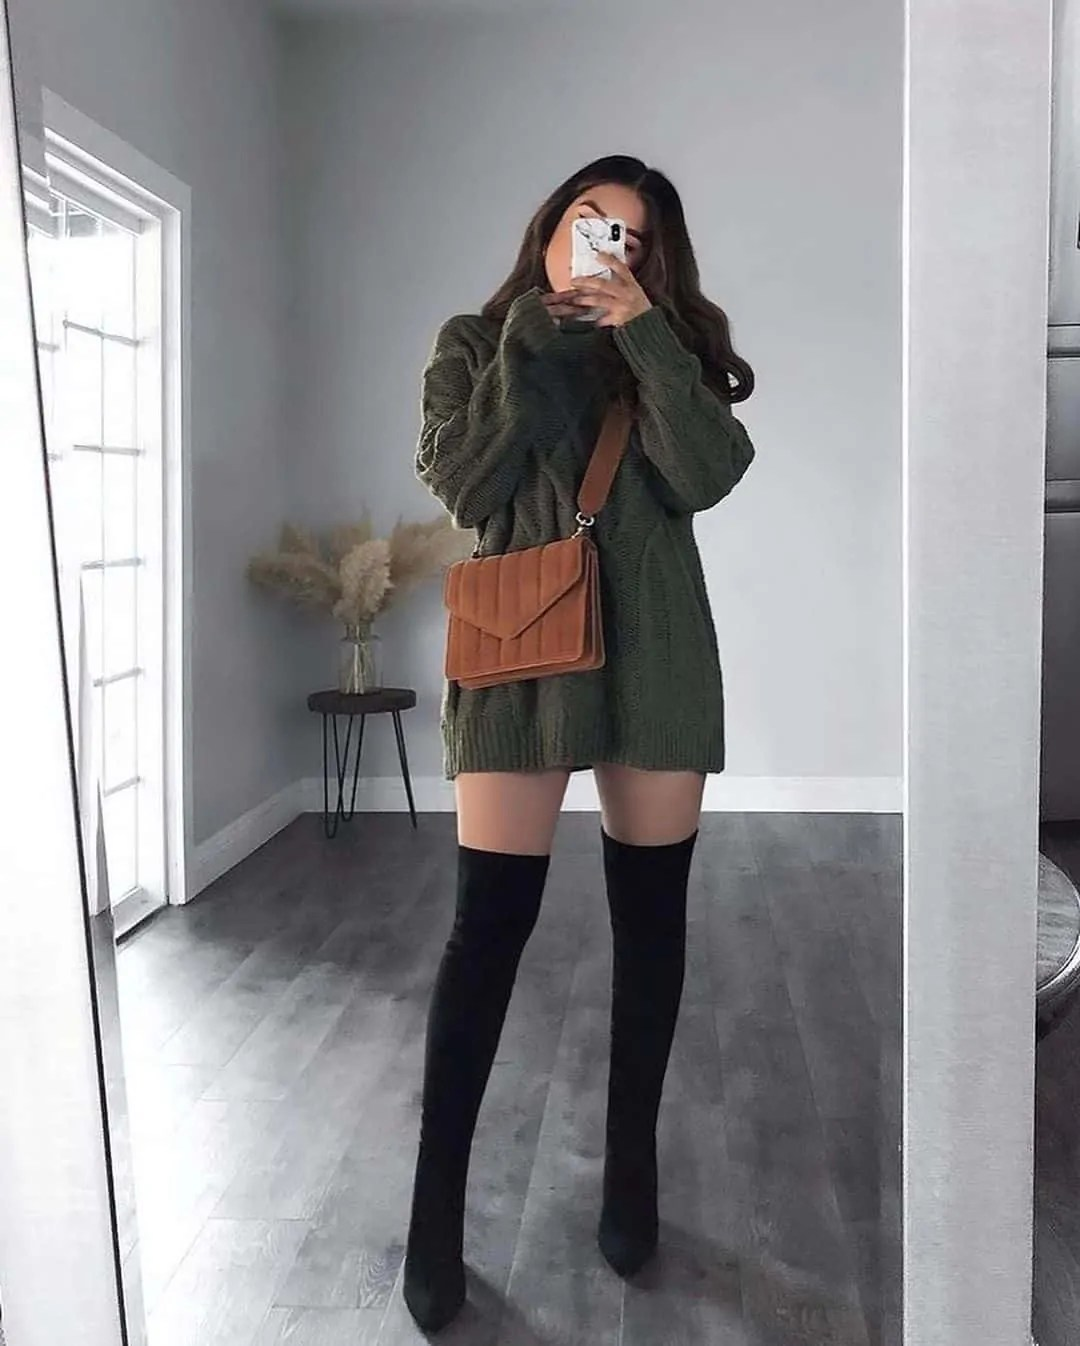 100+ fashion inspo outfits that you have to see no matter what your style is 133